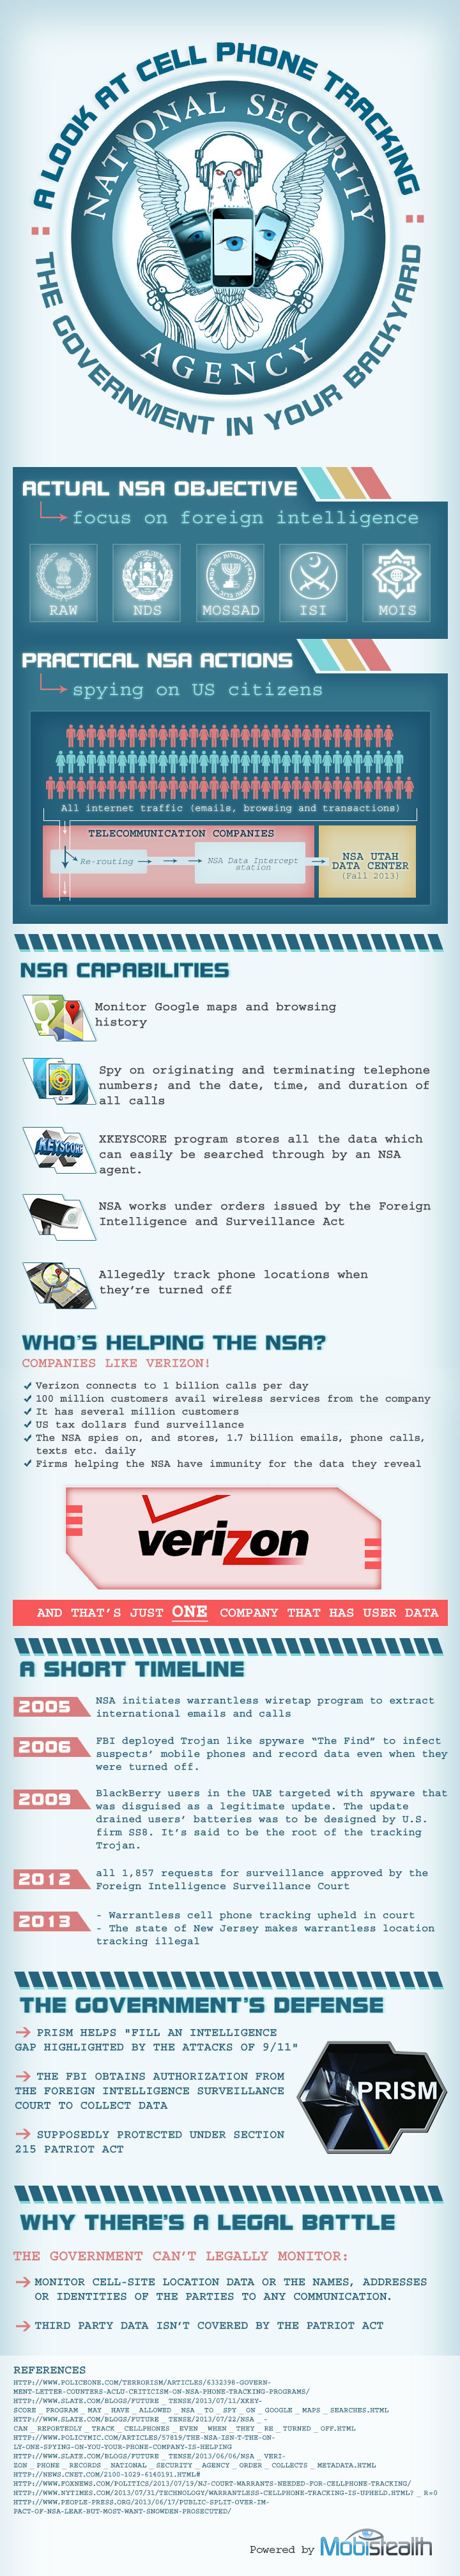 NSA: From Security Provider To Cell Phone Tracker